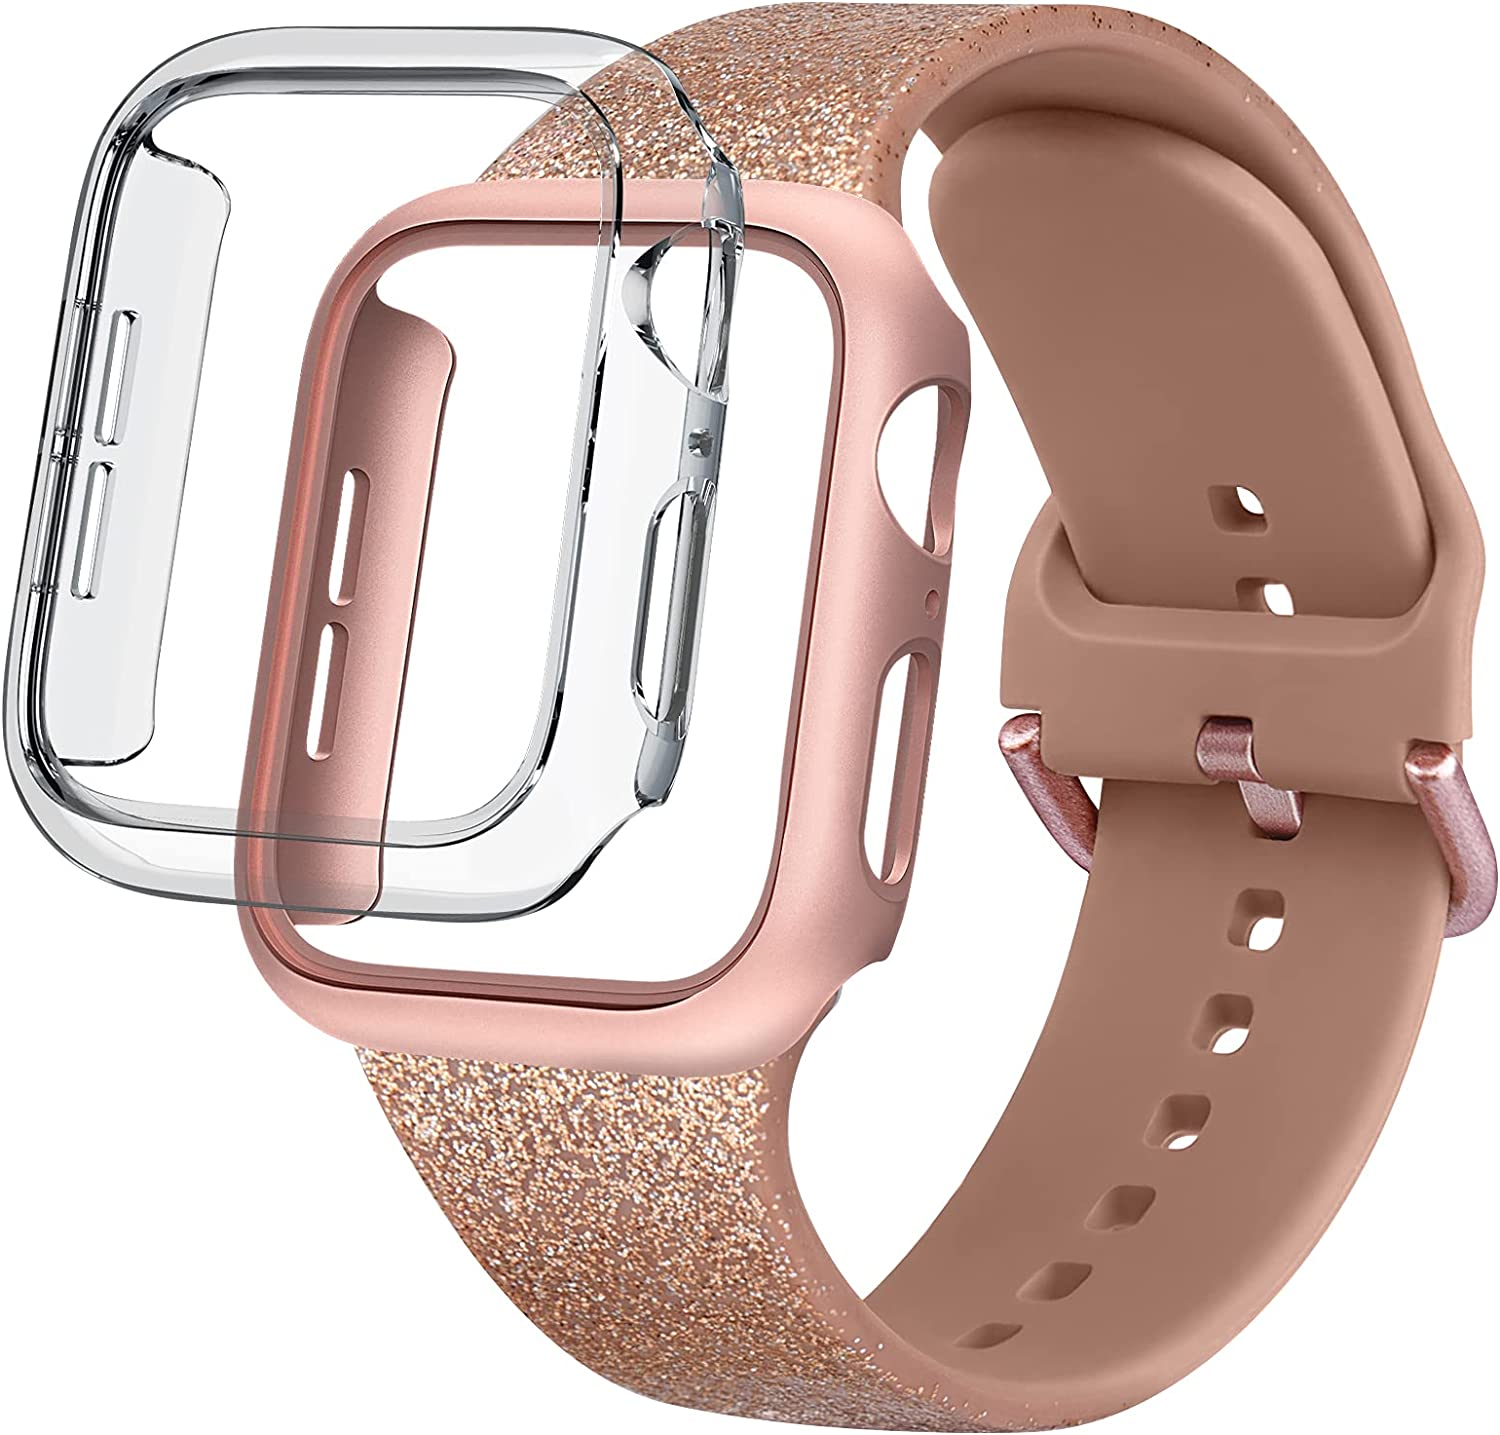 YILED Compatible for Apple Watch Band 40mm 44mm with Case, Soft Silicone Replacement Wristband Strap & 2 Pack Hard PC Bumper Case Protective Cover Frame for iWatch Series 6 5 4 SE for Women Men